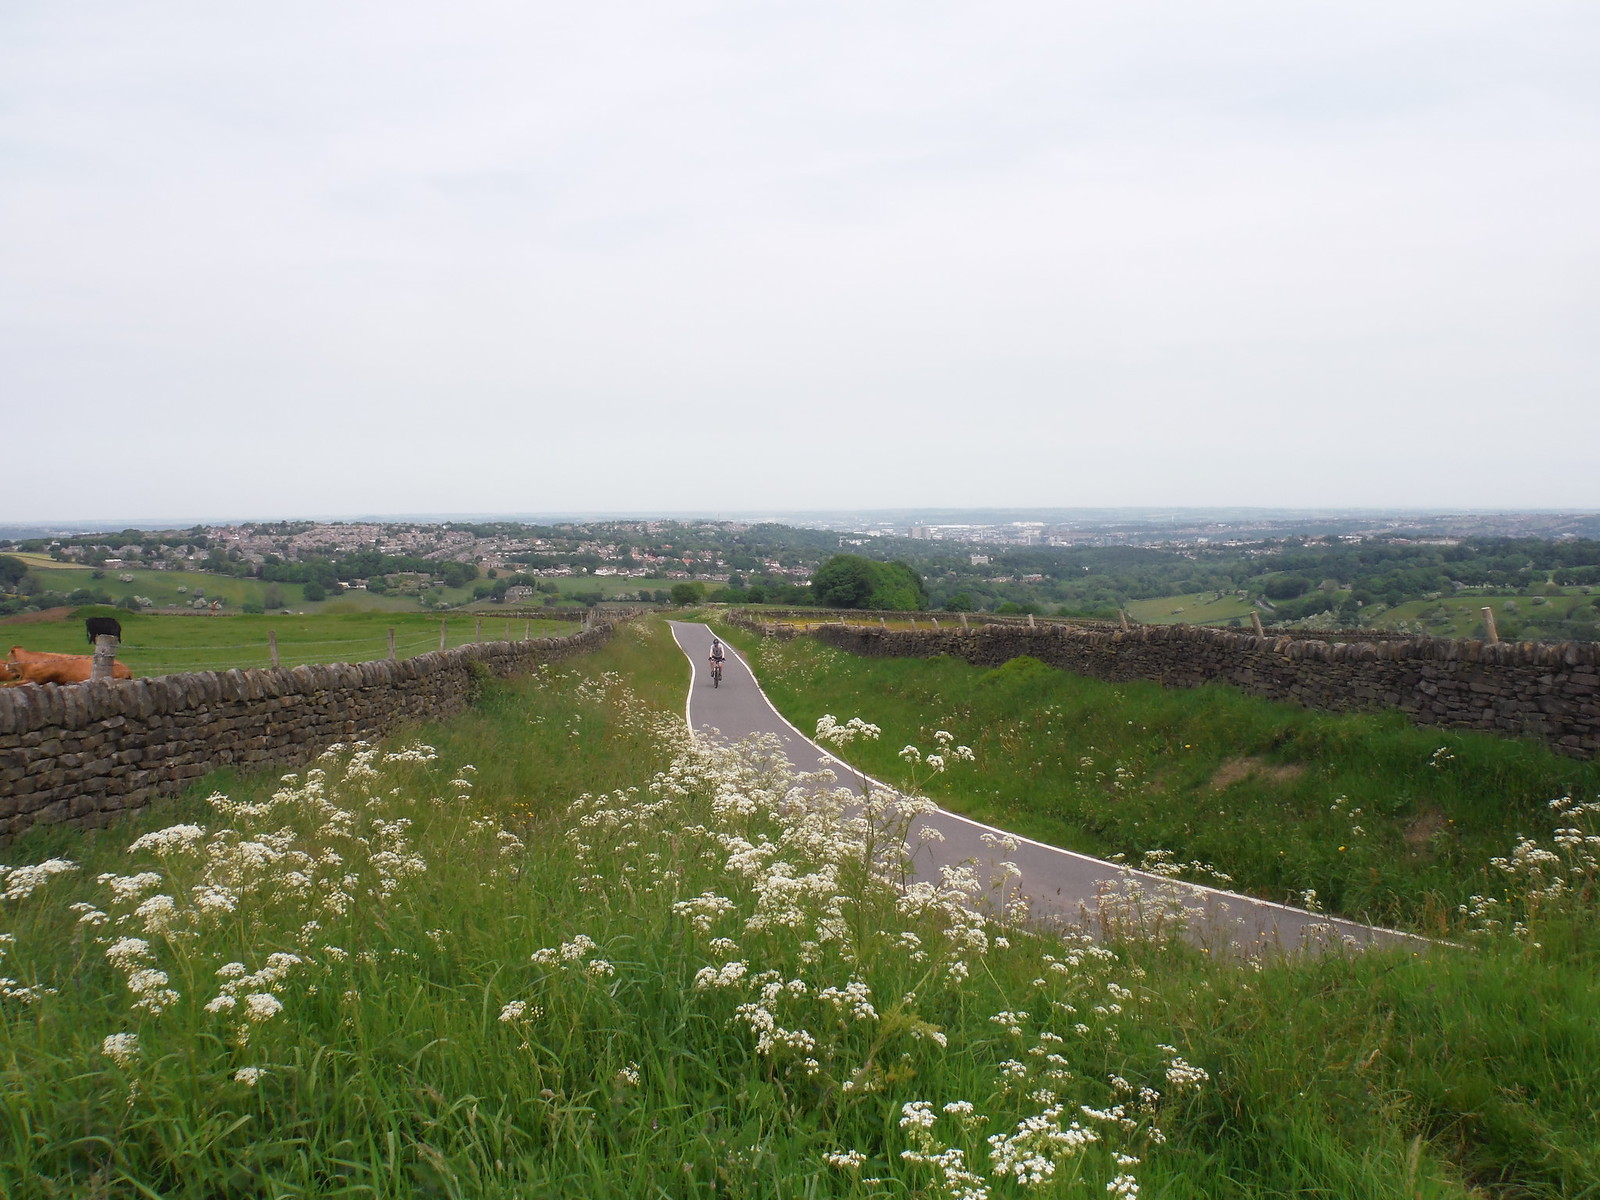 View from Viewpoint on Greenhouse Lane SWC Walk 267 - Sheffield Circular (via Porter, Limb, Sheaf and Gleadless Valleys)